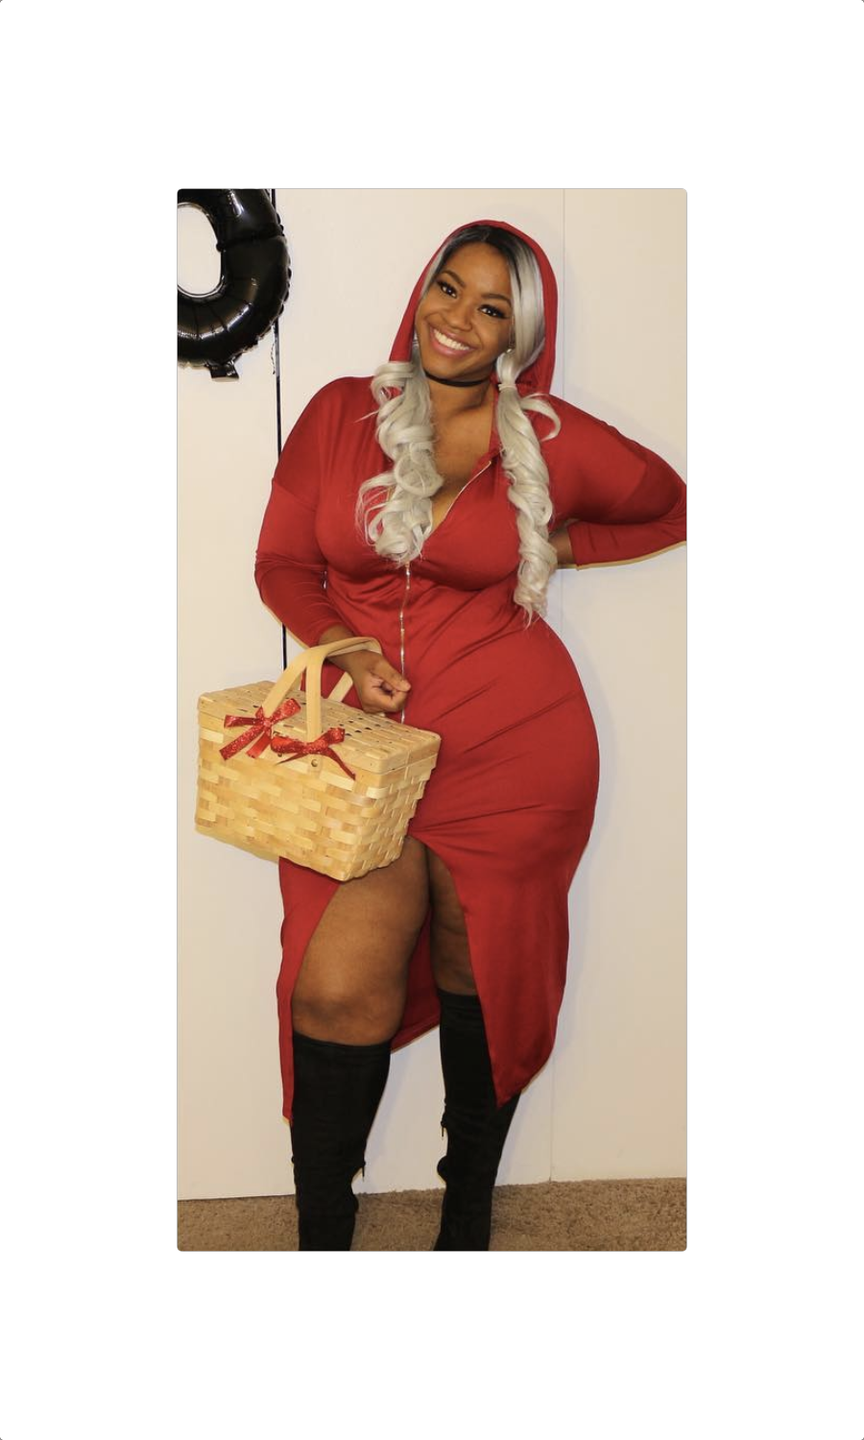 """<p>As long as you have a hooded red dress and a pair of black boots, the only accessory you need is a simple wicker picnic basket. Can't find a red dress? Opt for a skirt and a hoodie combo. </p><p><a class=""""link rapid-noclick-resp"""" href=""""https://www.amazon.com/Vintiquewise-Rectangular-Basket-Gingham-Lining/dp/B00RW5VDUC/ref=sr_1_3?dchild=1&keywords=wicker+picnic+basket&qid=1594228392&sr=8-3&tag=syn-yahoo-20&ascsubtag=%5Bartid%7C10072.g.28615520%5Bsrc%7Cyahoo-us"""" rel=""""nofollow noopener"""" target=""""_blank"""" data-ylk=""""slk:SHOP BASKET"""">SHOP BASKET</a></p>"""